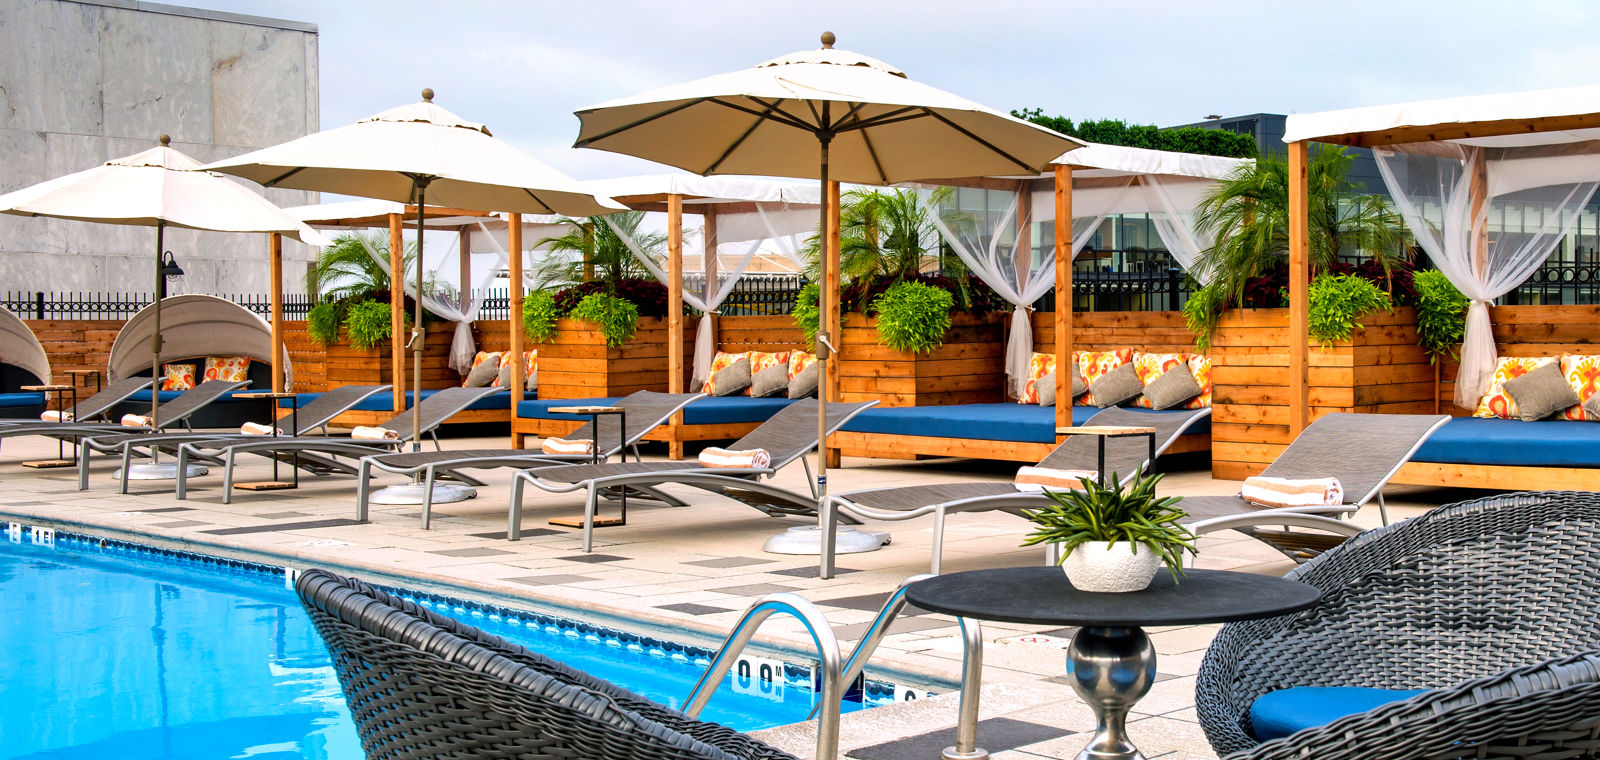 Liaison DC Rooftop Pool with Umbrellas